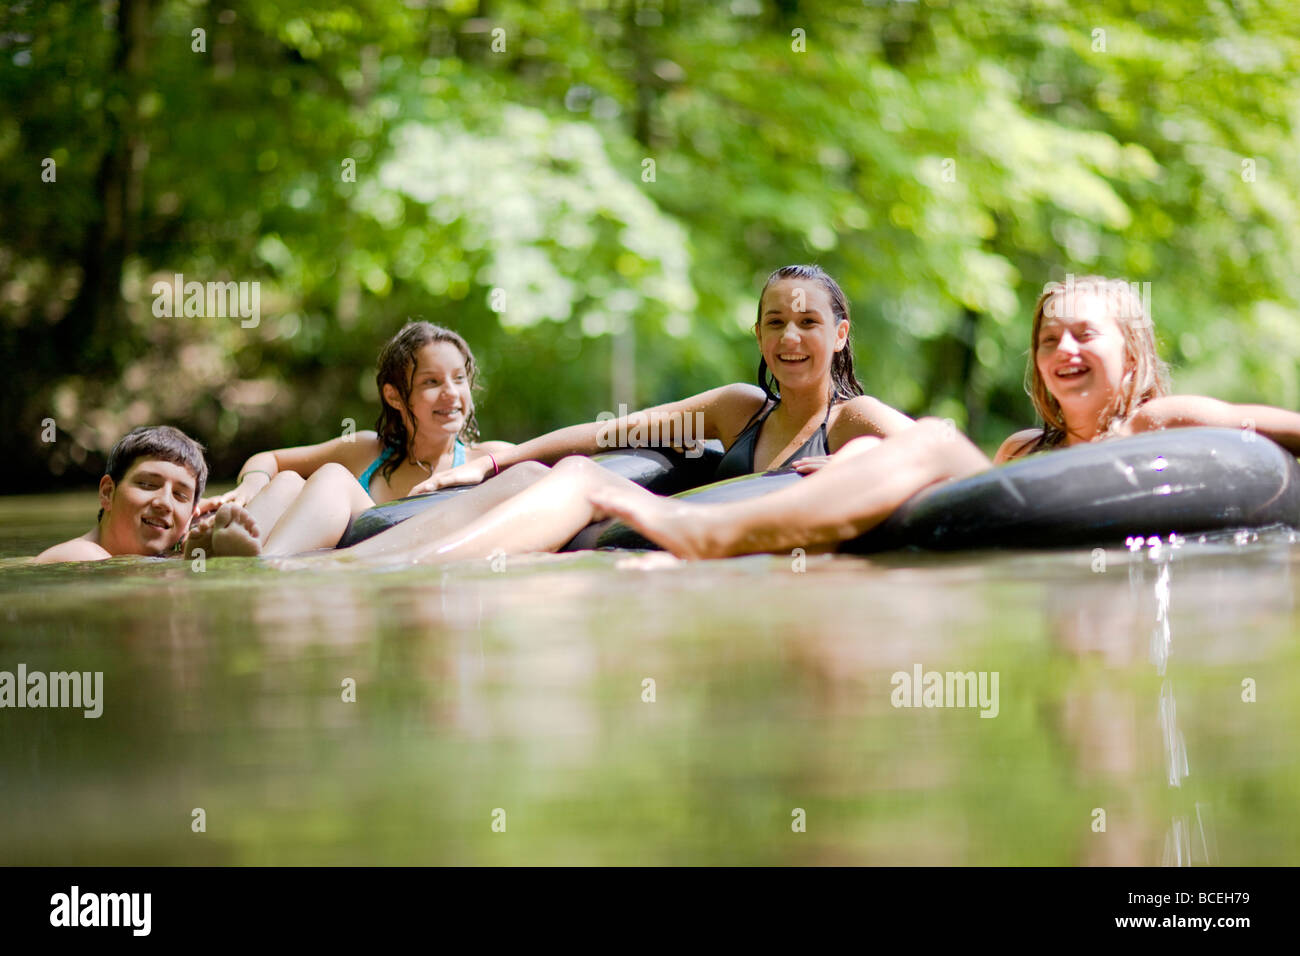 Teenagers sitting in innertubes in the water Stock Photo